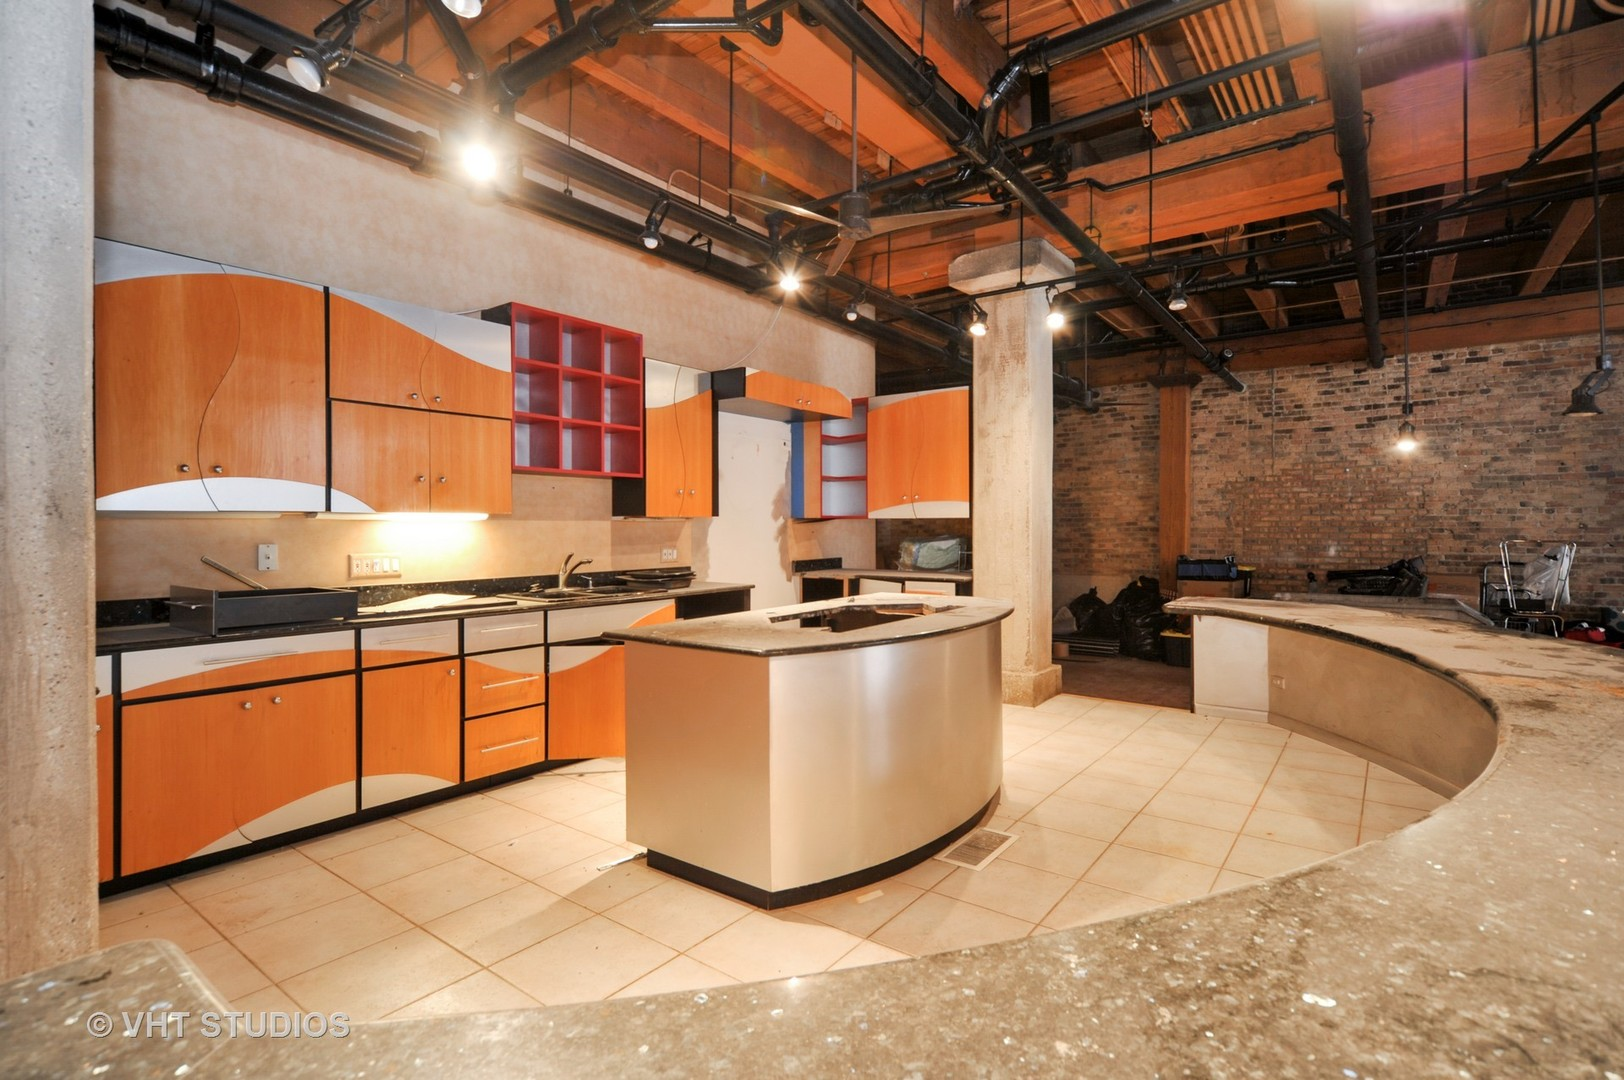 420 Grand Avenue, Chicago, Illinois 60654, 3 Bedrooms Bedrooms, ,2 BathroomsBathrooms,Attached Single,For Sale,Grand,09090210